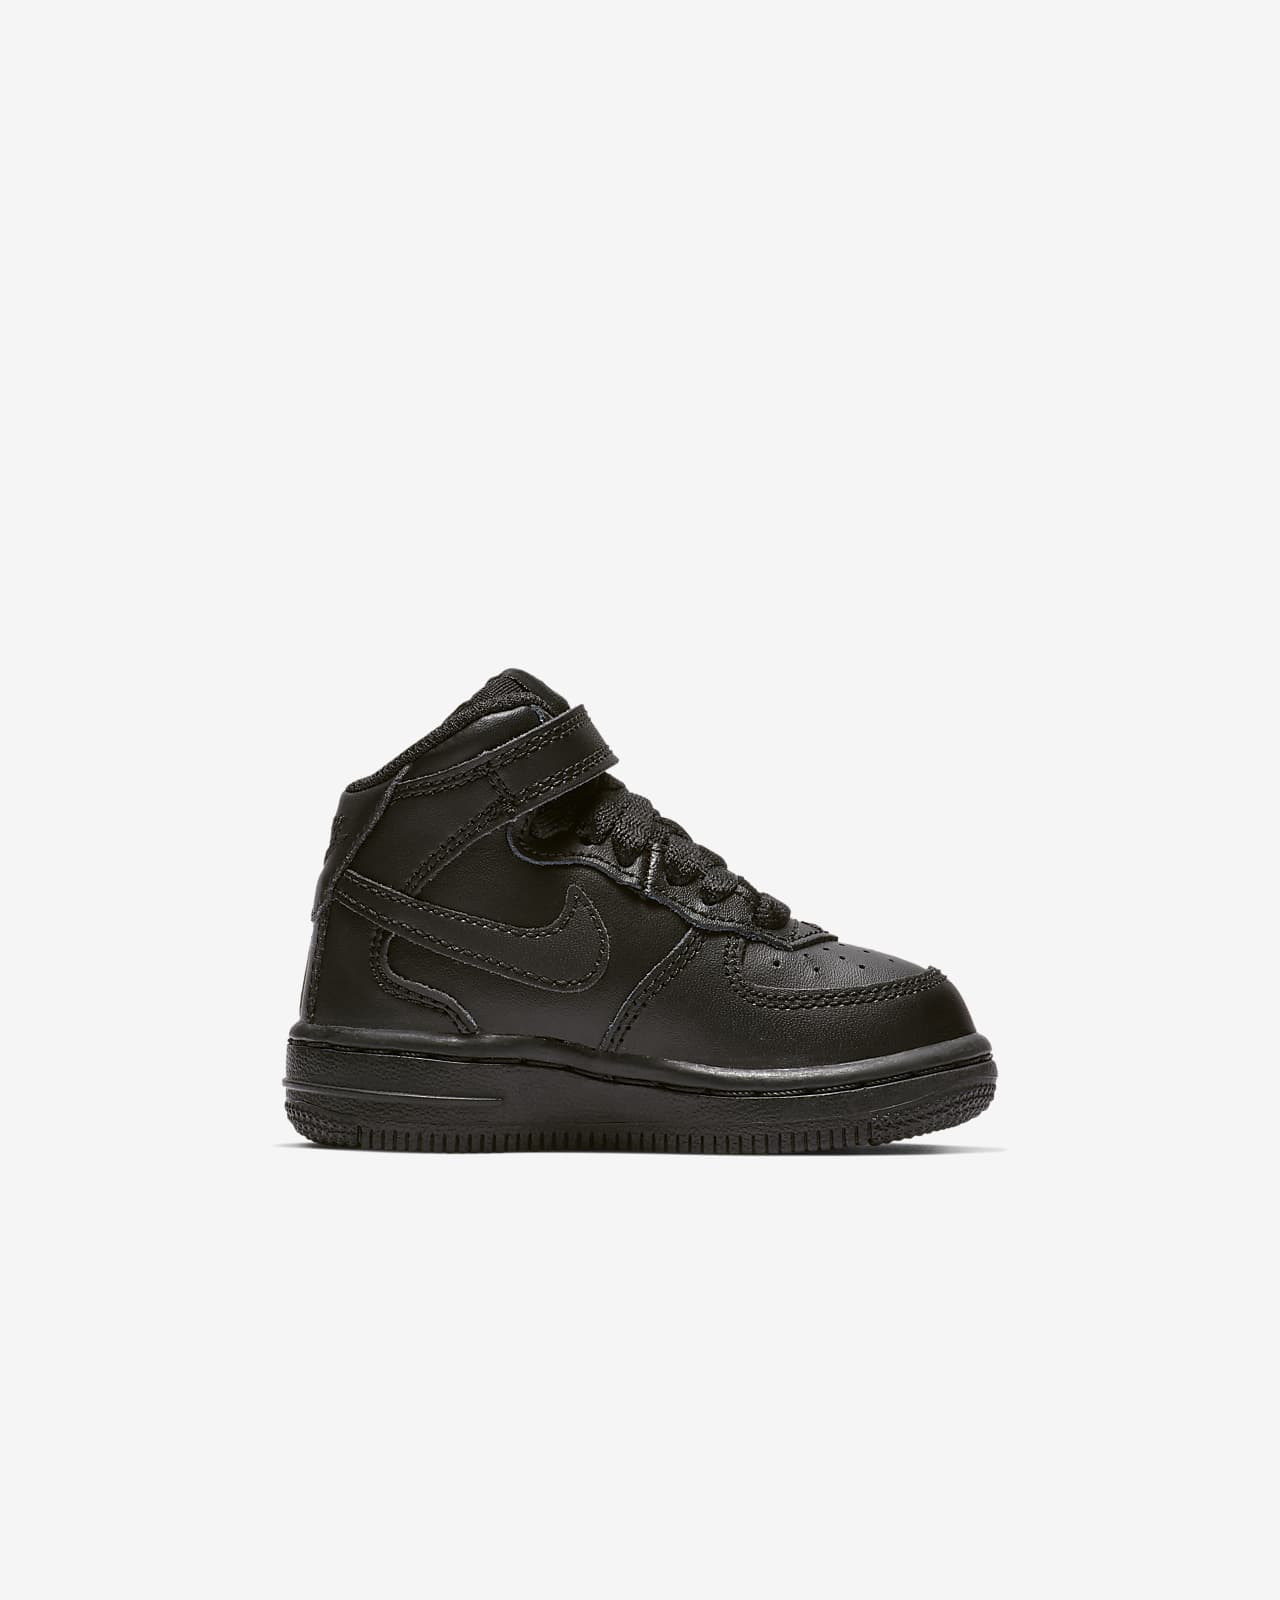 Nike Force 1 Mid Baby/Toddler Shoes